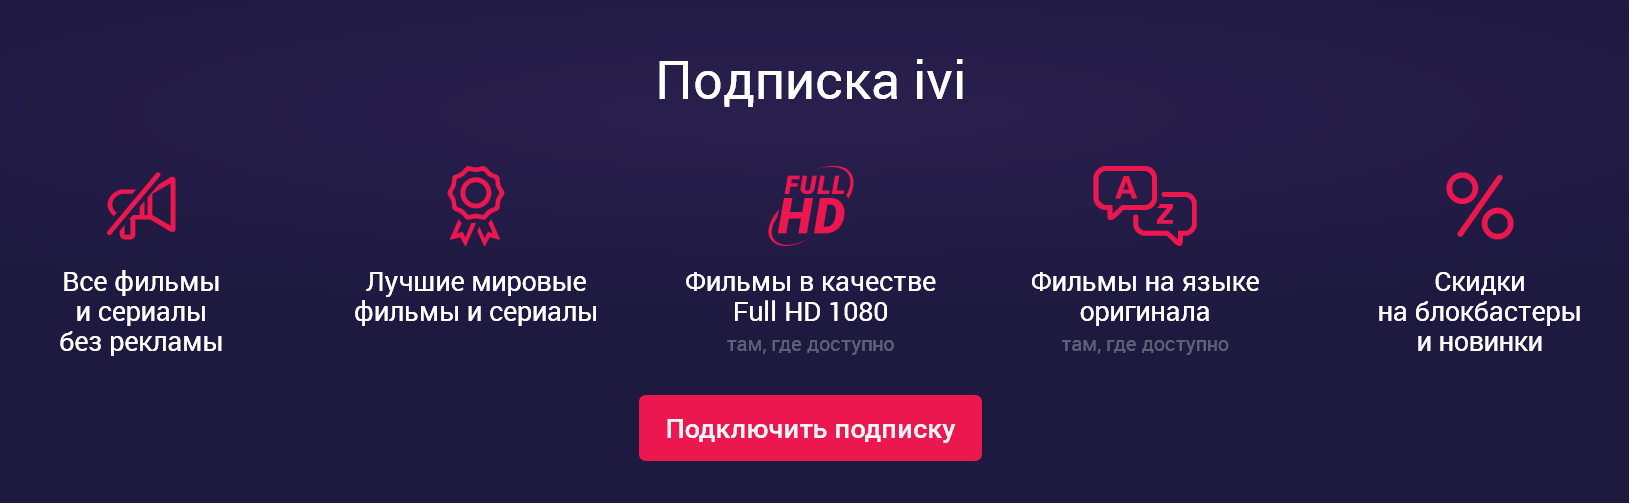 ACCOUNT (NEW!✅) IVI subscription until 27.09.2019